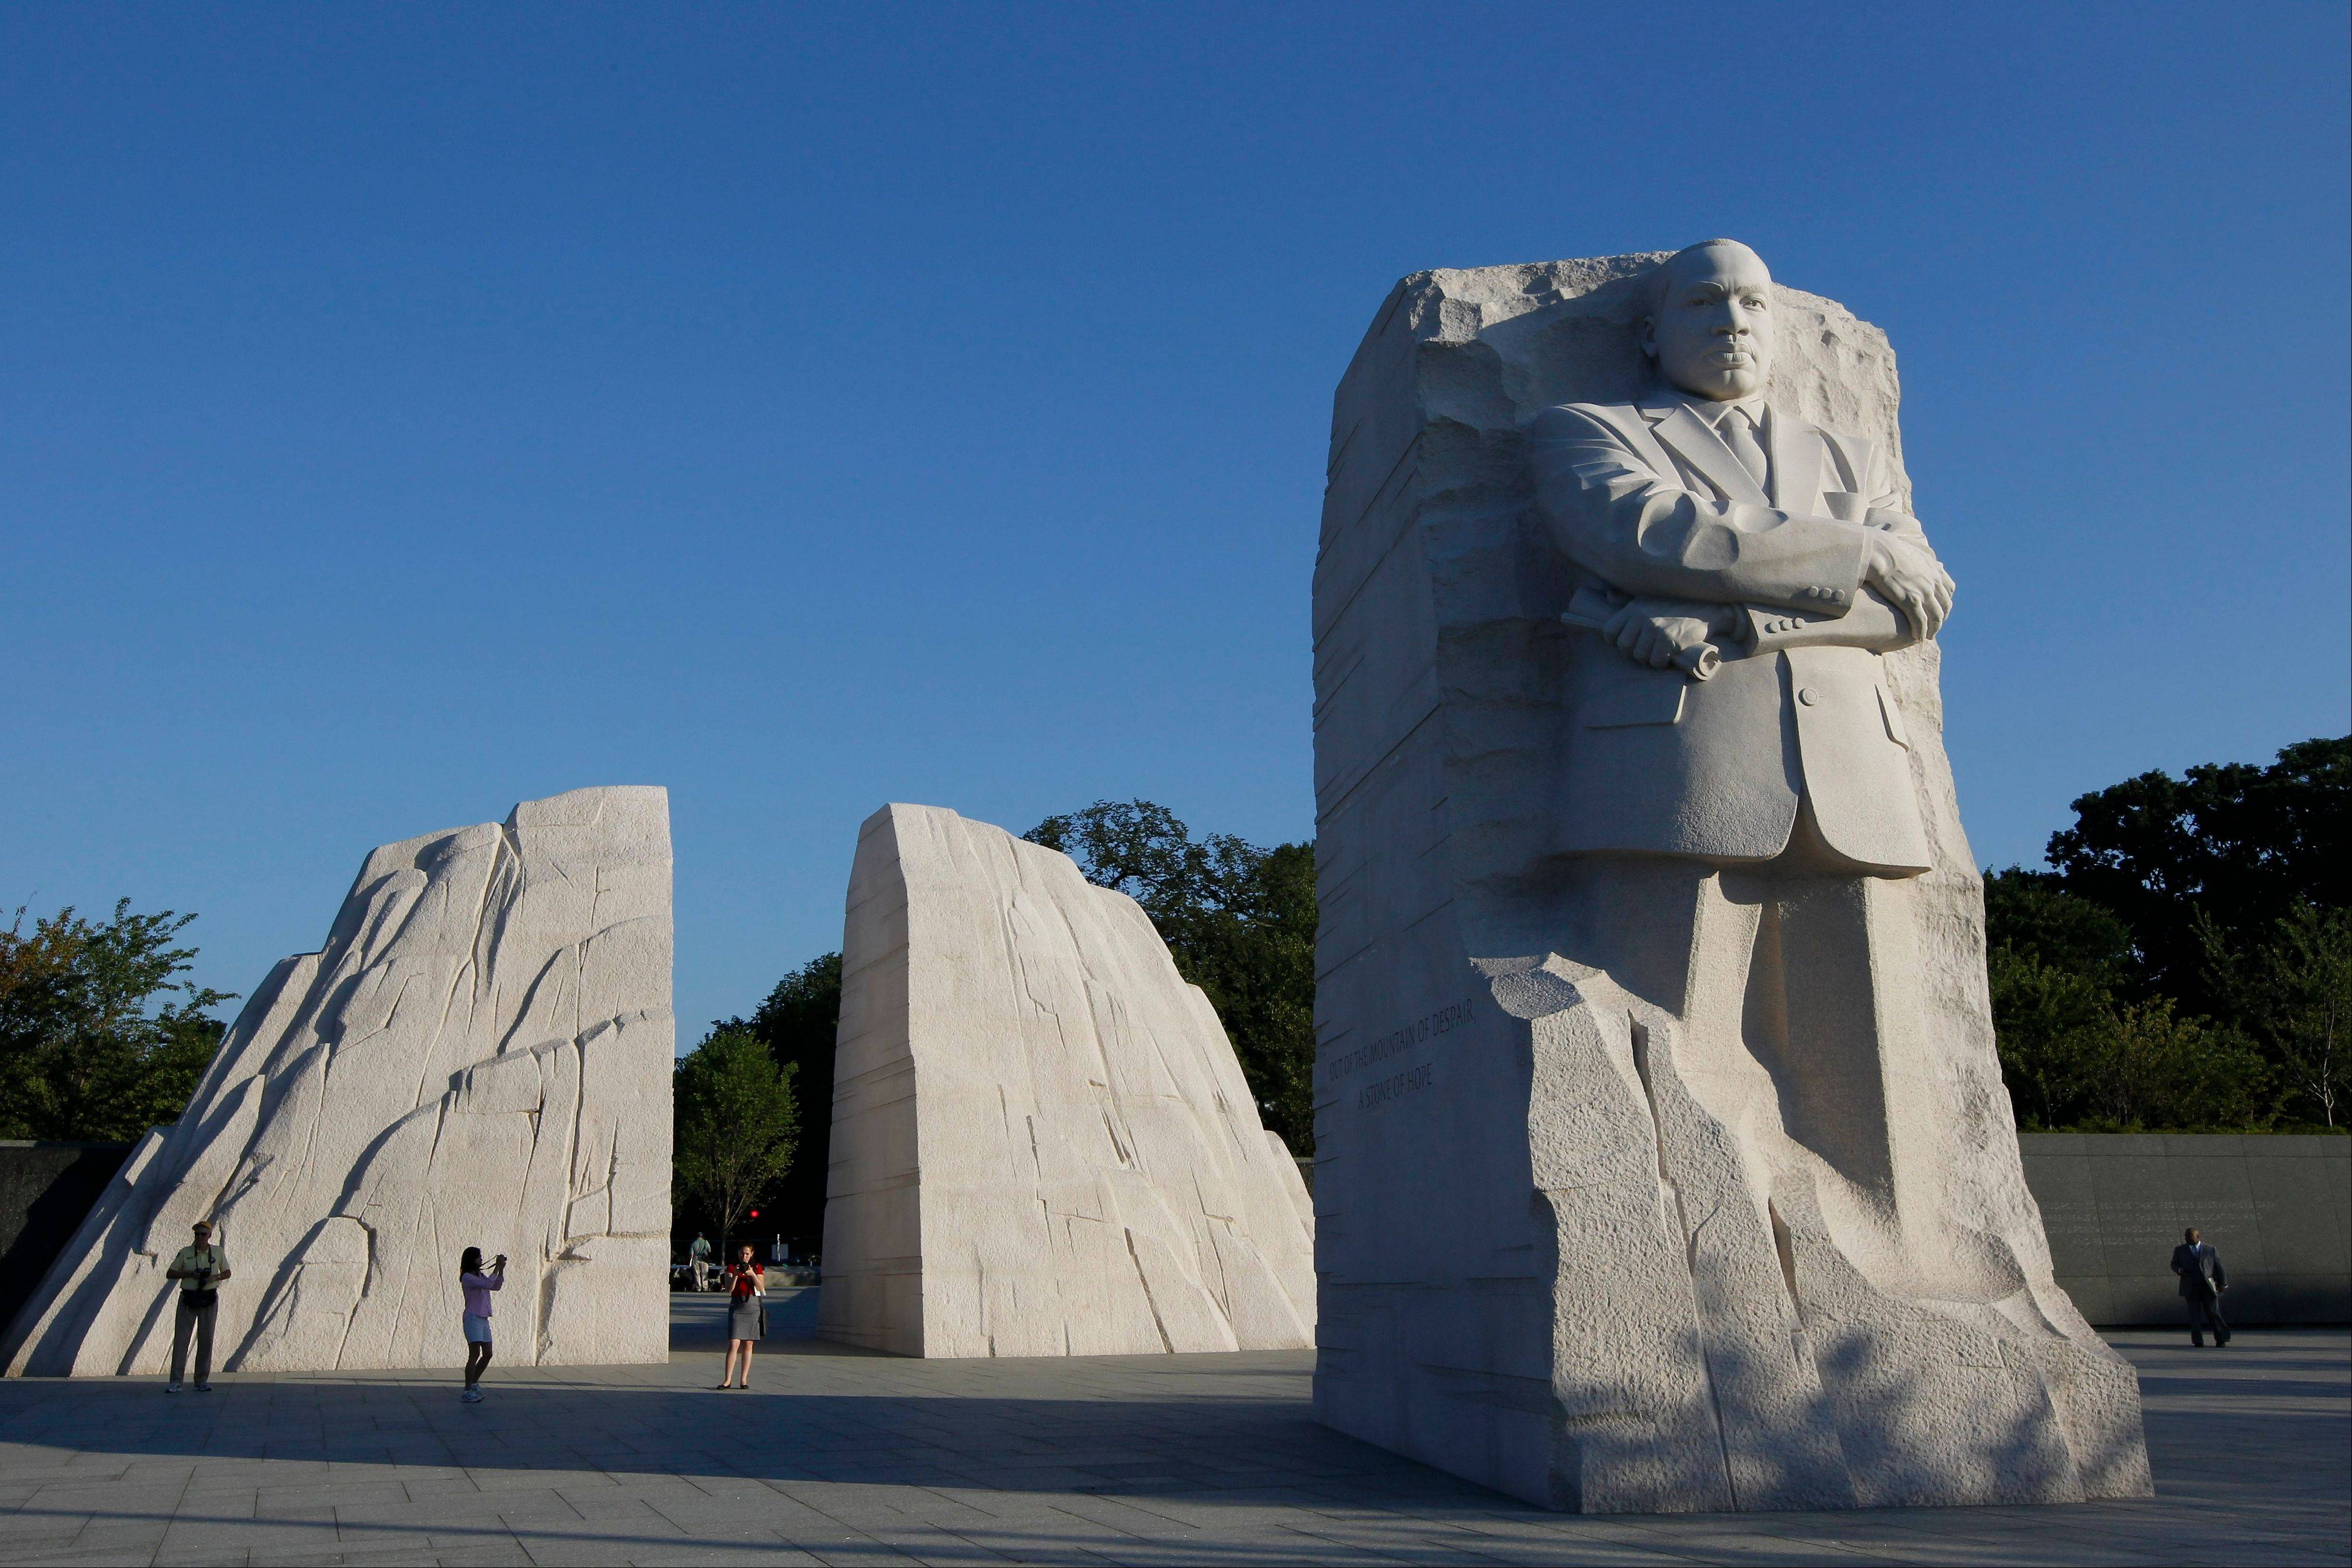 The Martin Luther King, Jr. Memorial is seen Monday, Aug. 22, 2011 in Washington, ahead of its dedication next weekend.